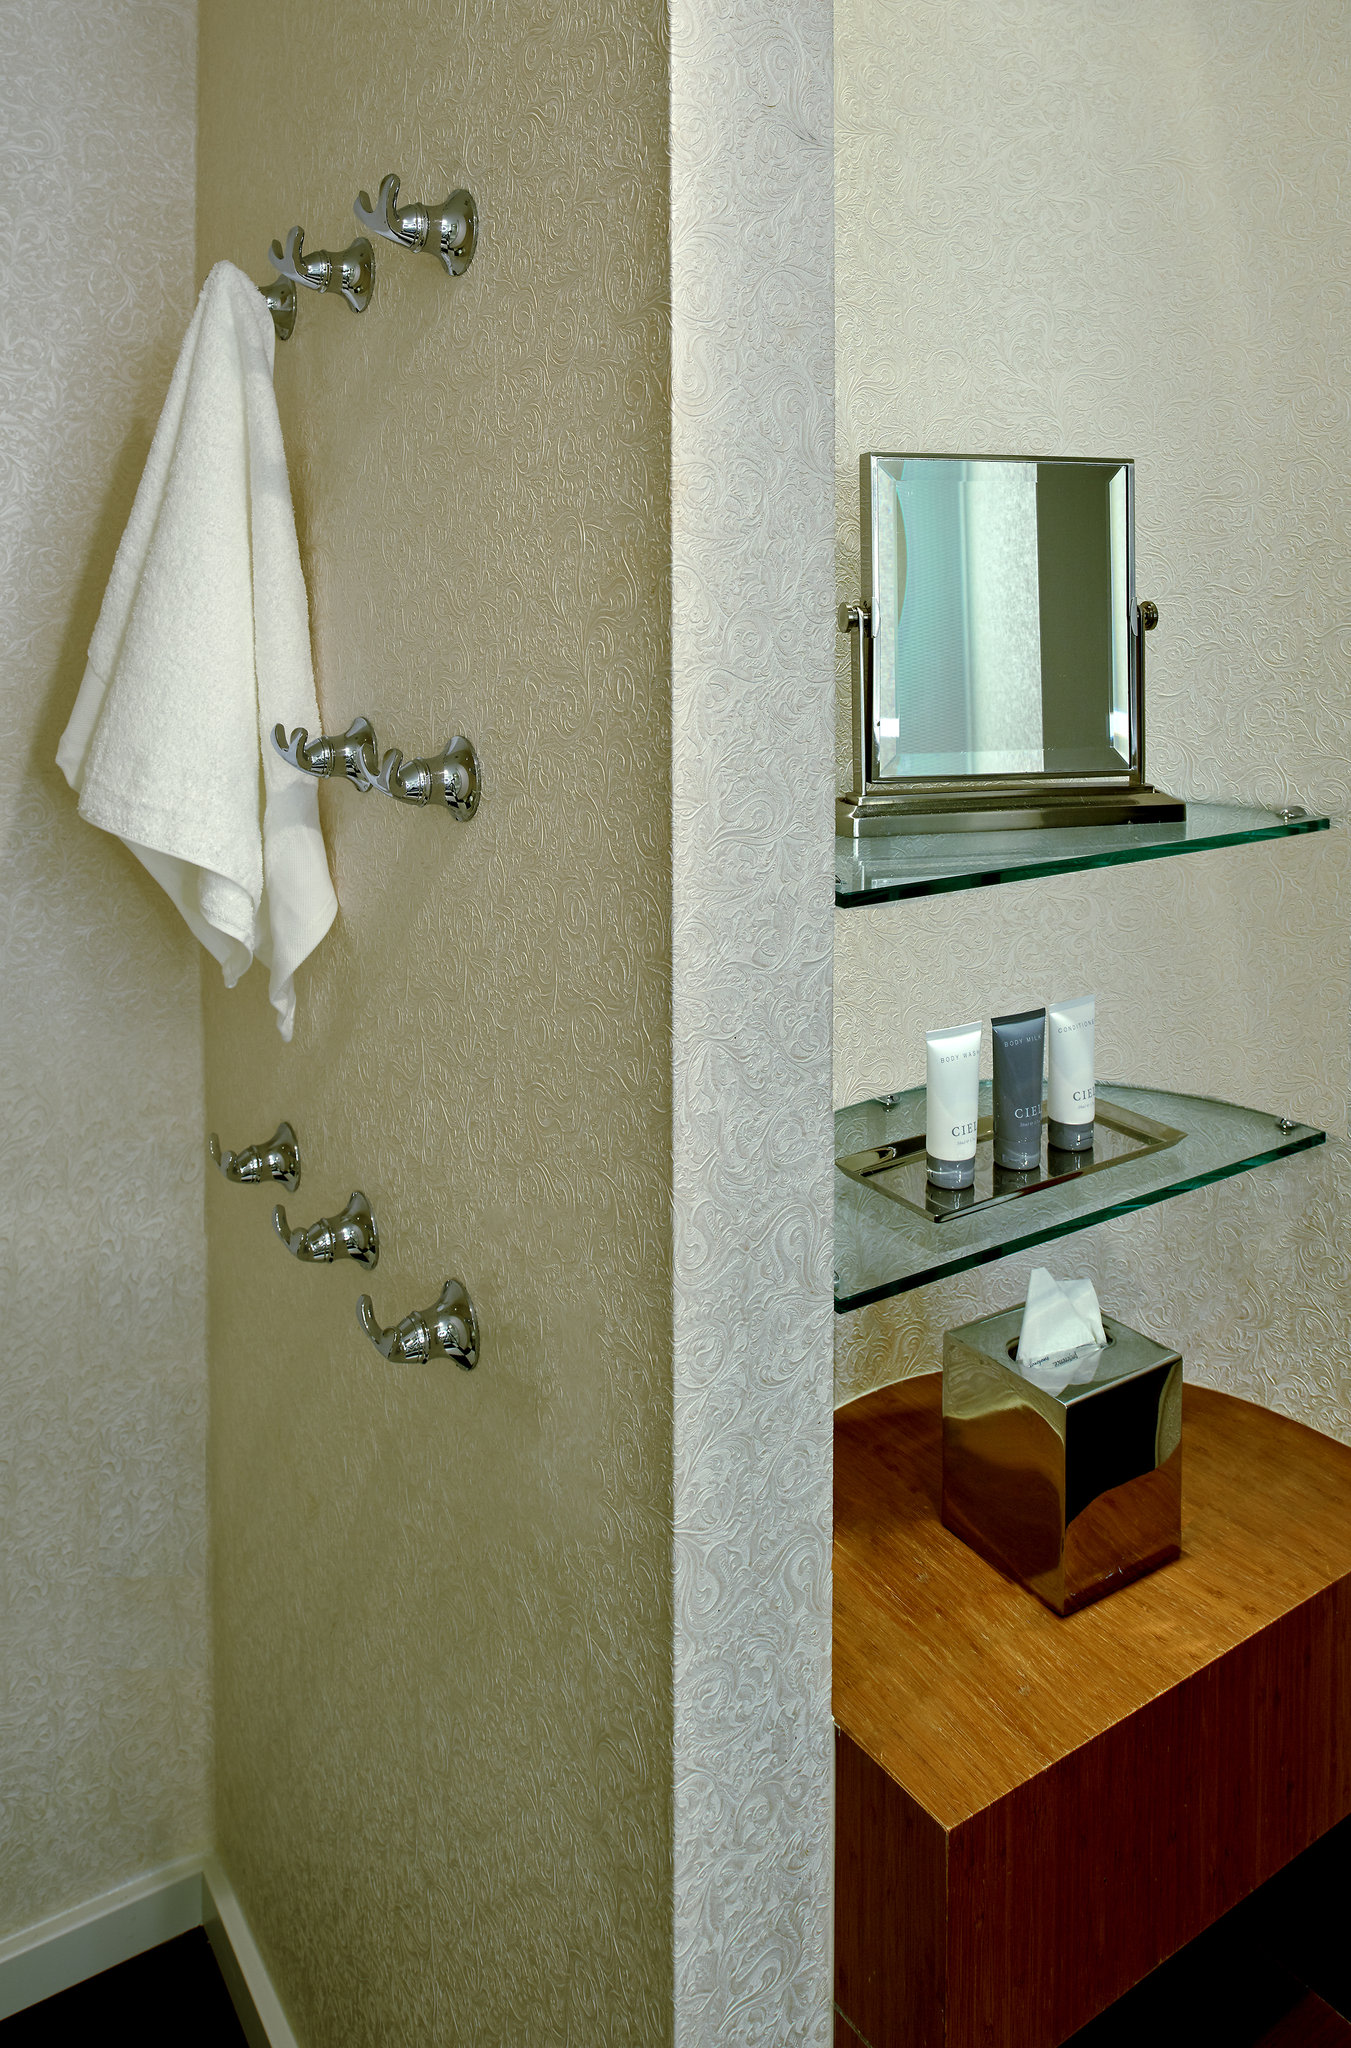 MLAOne Bedroom Bathroom Amenities